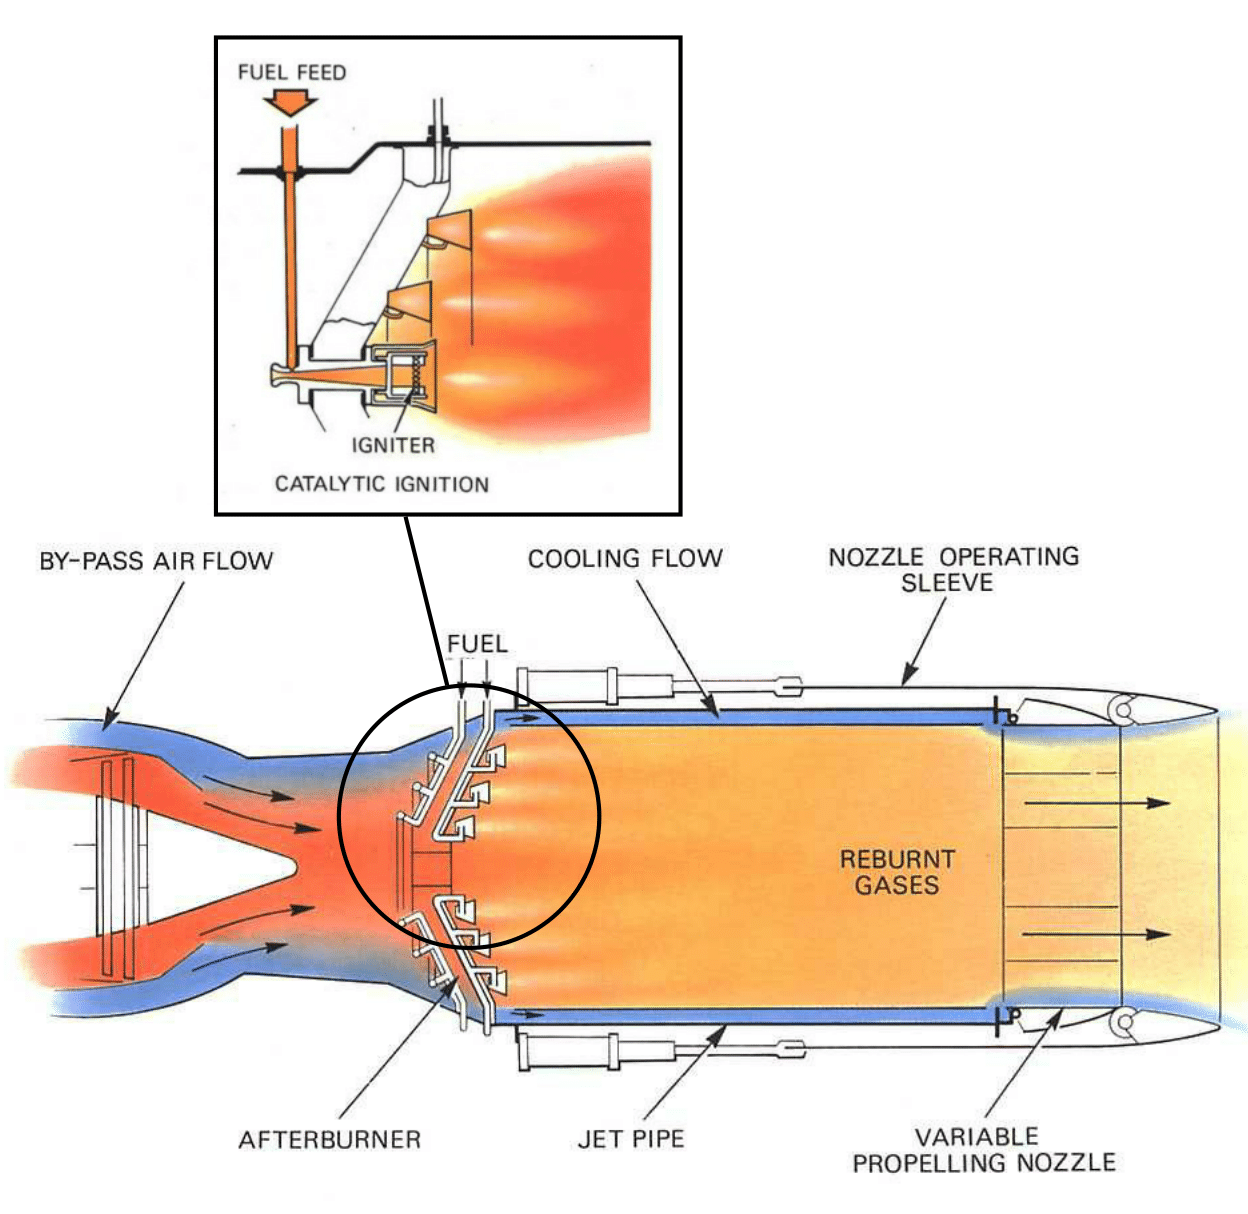 Jet Engine Design: Afterburning – Aerospace Engineering Blog